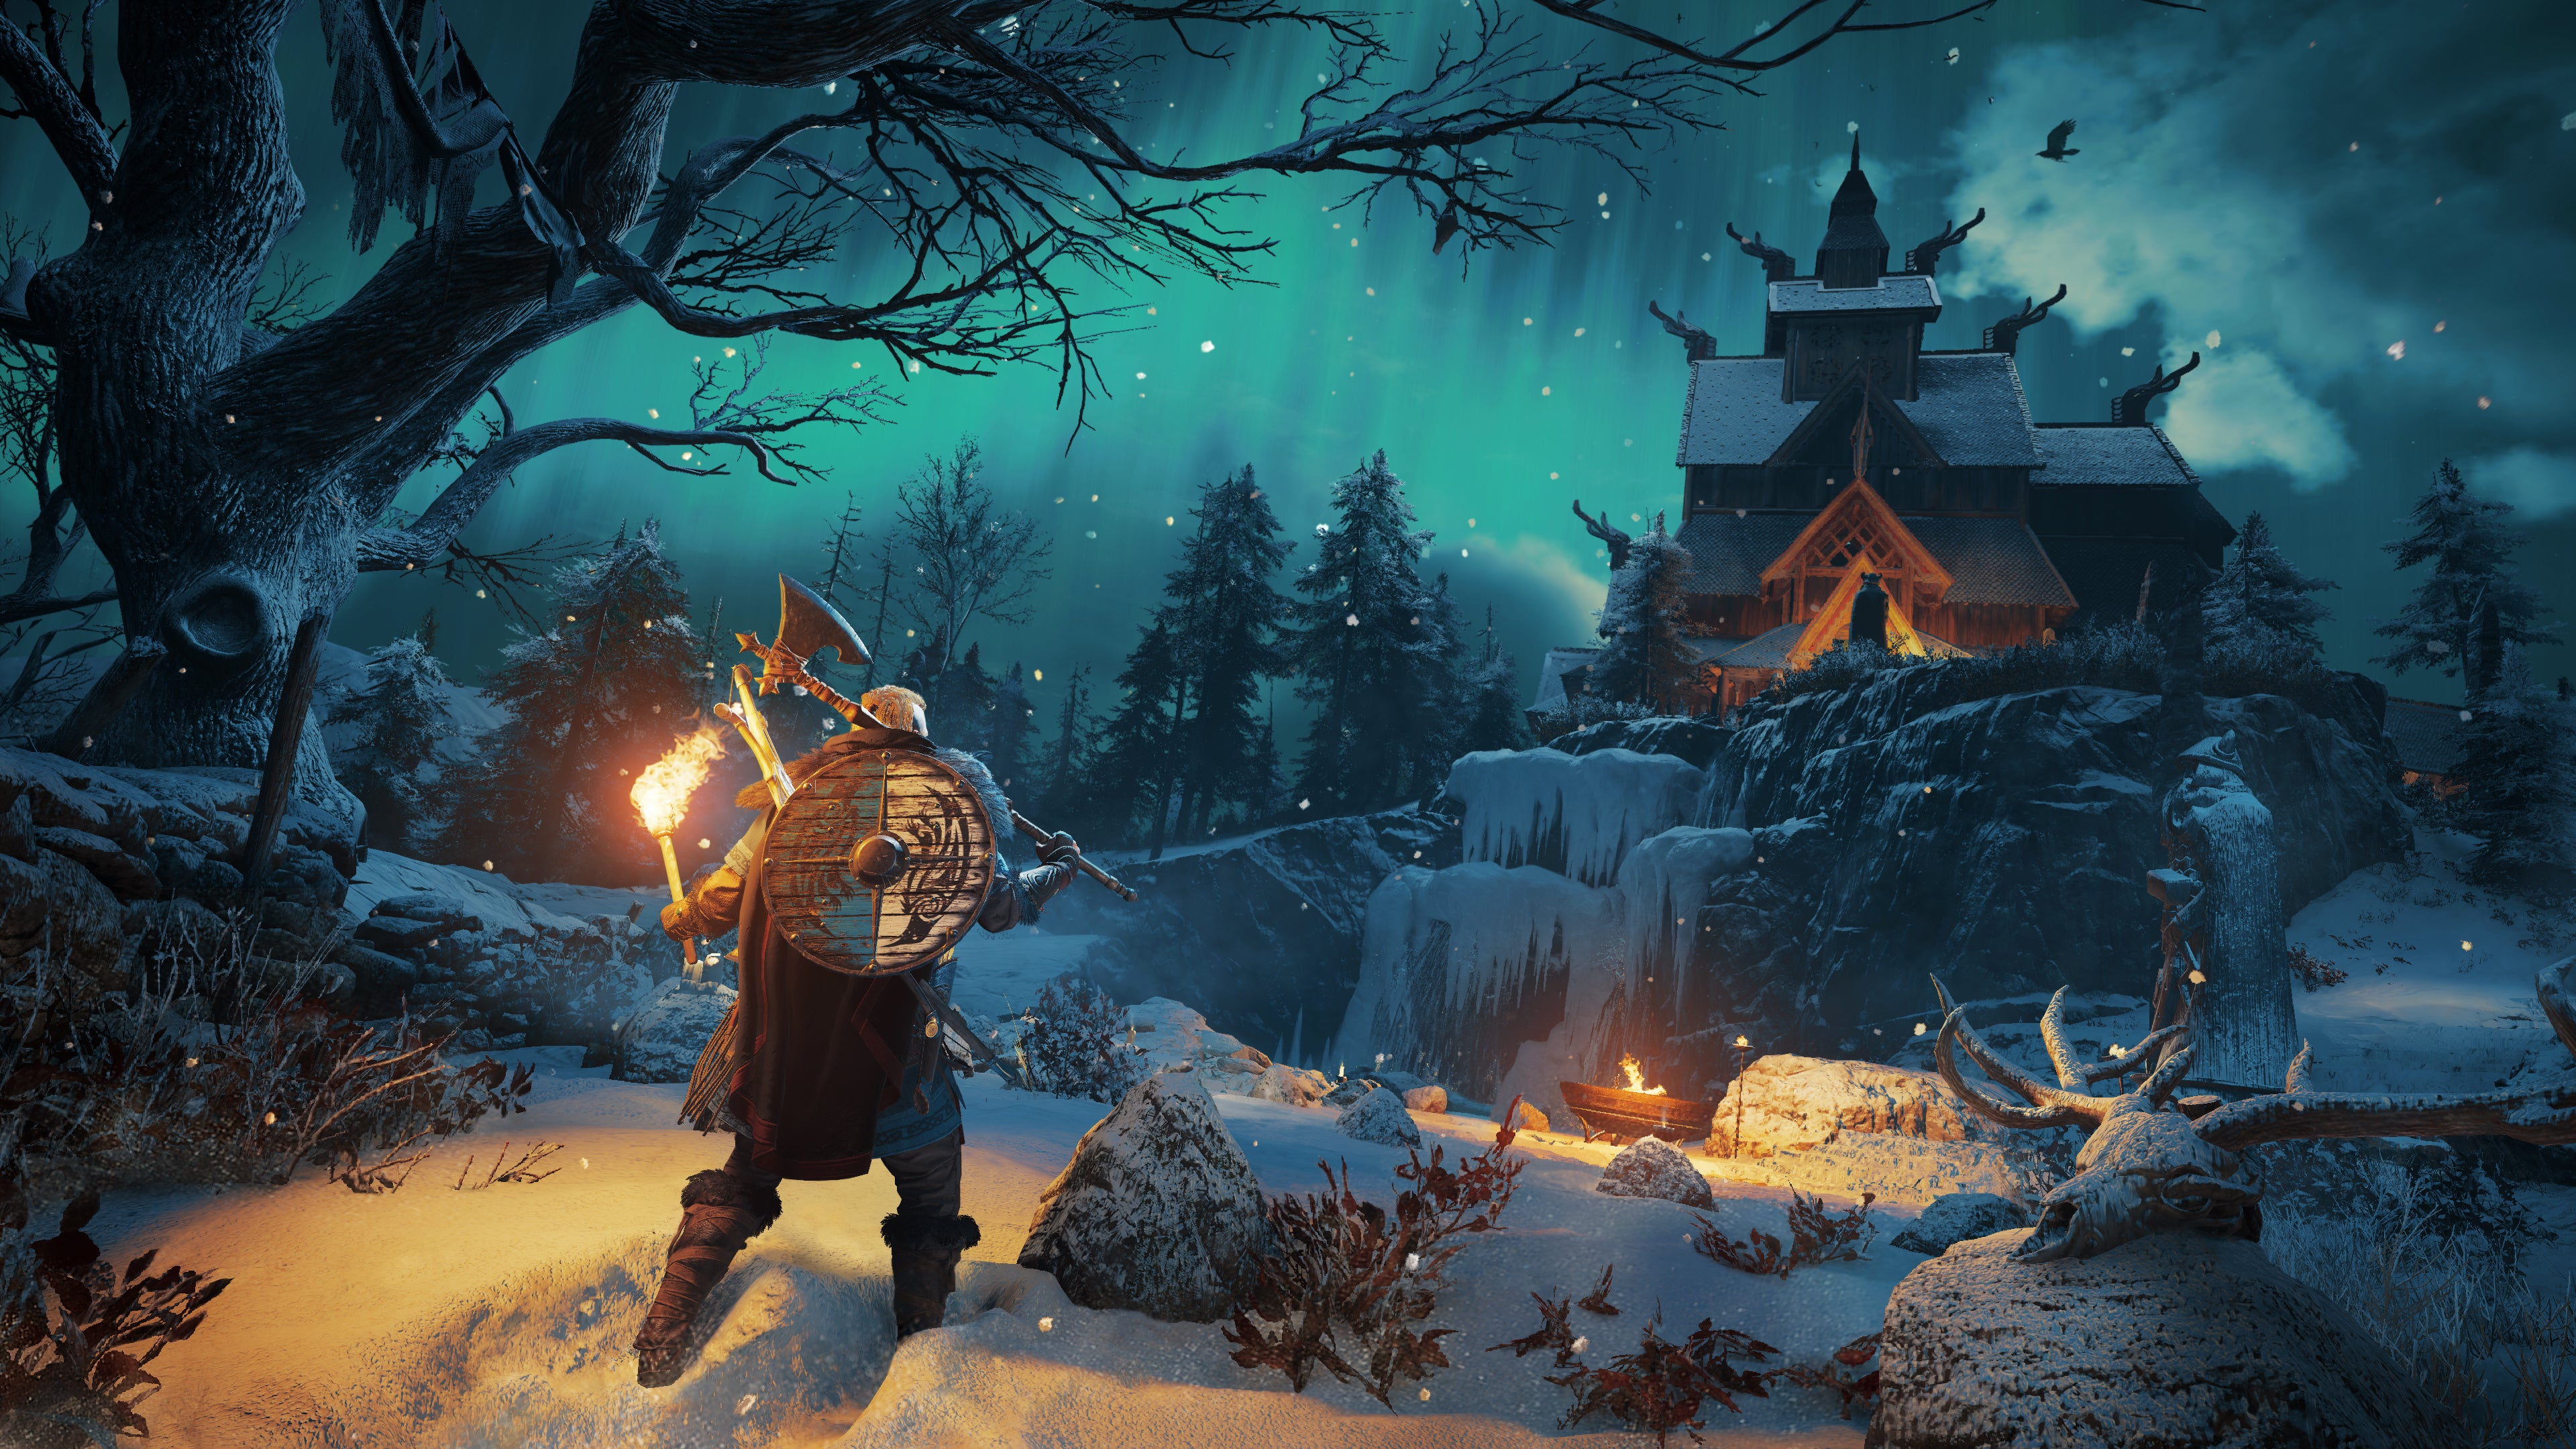 Assassins Creed Valhalla First In Game Images Revealed   IGN 3840x2160